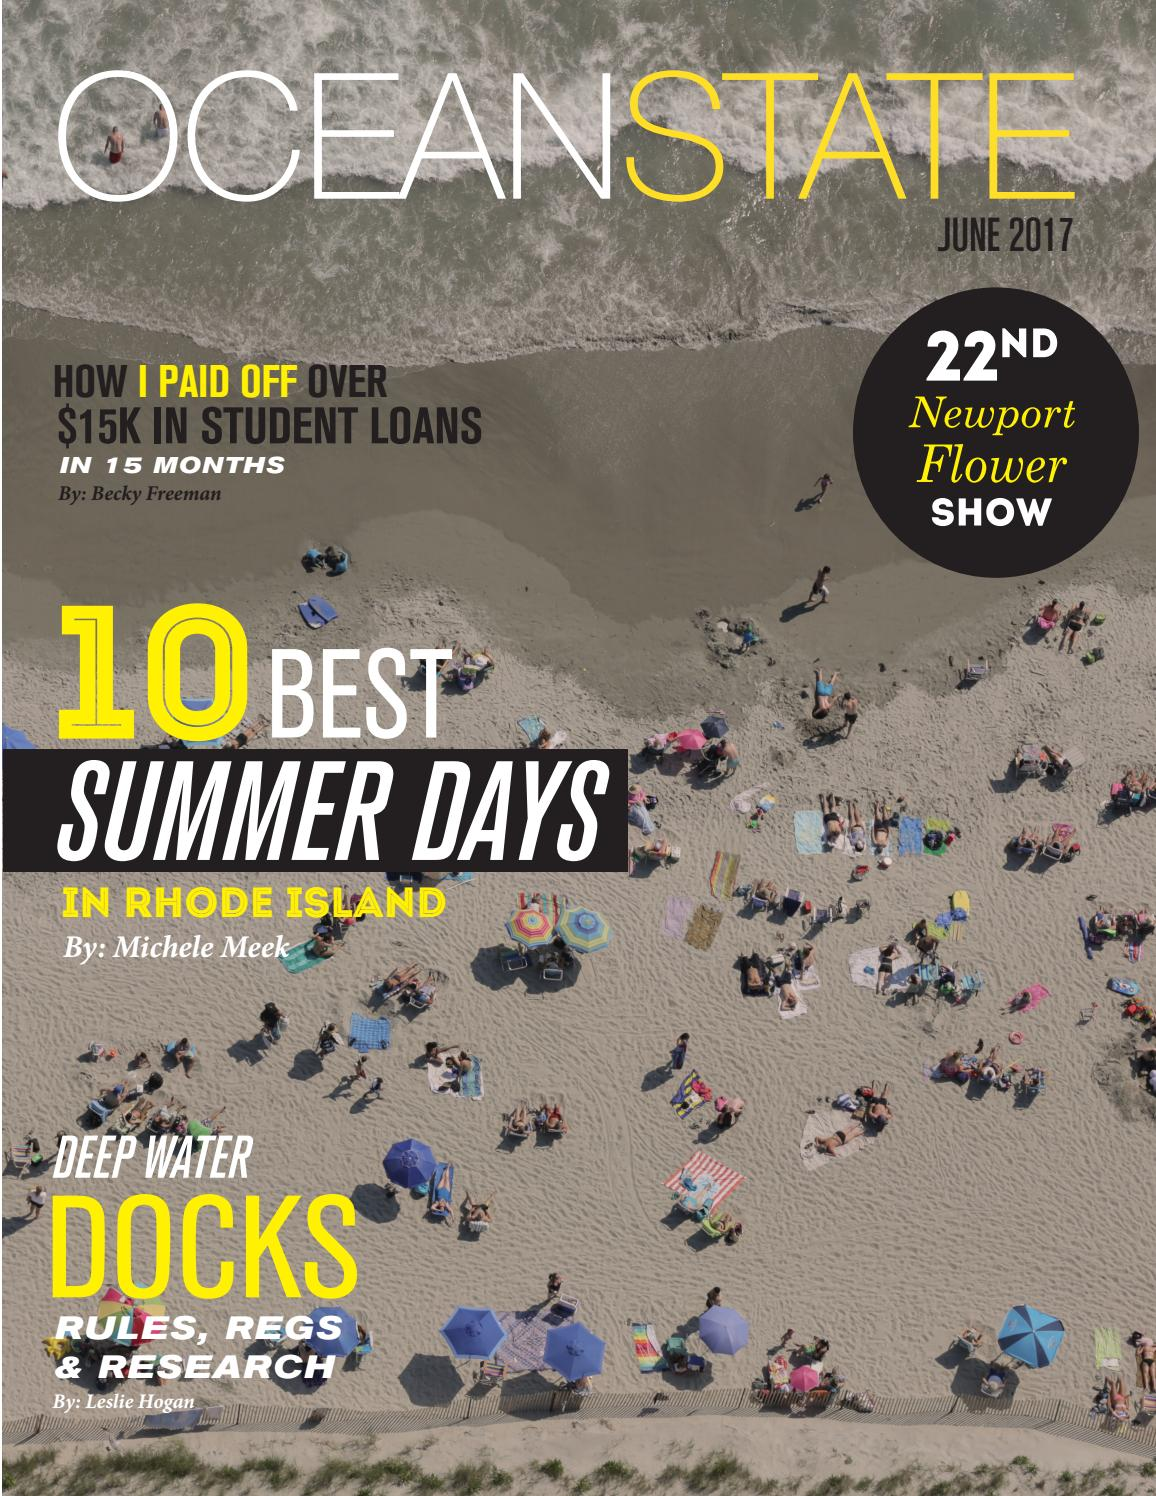 Ocean state magazine june 2017 by ocean state magazine issuu geenschuldenfo Image collections